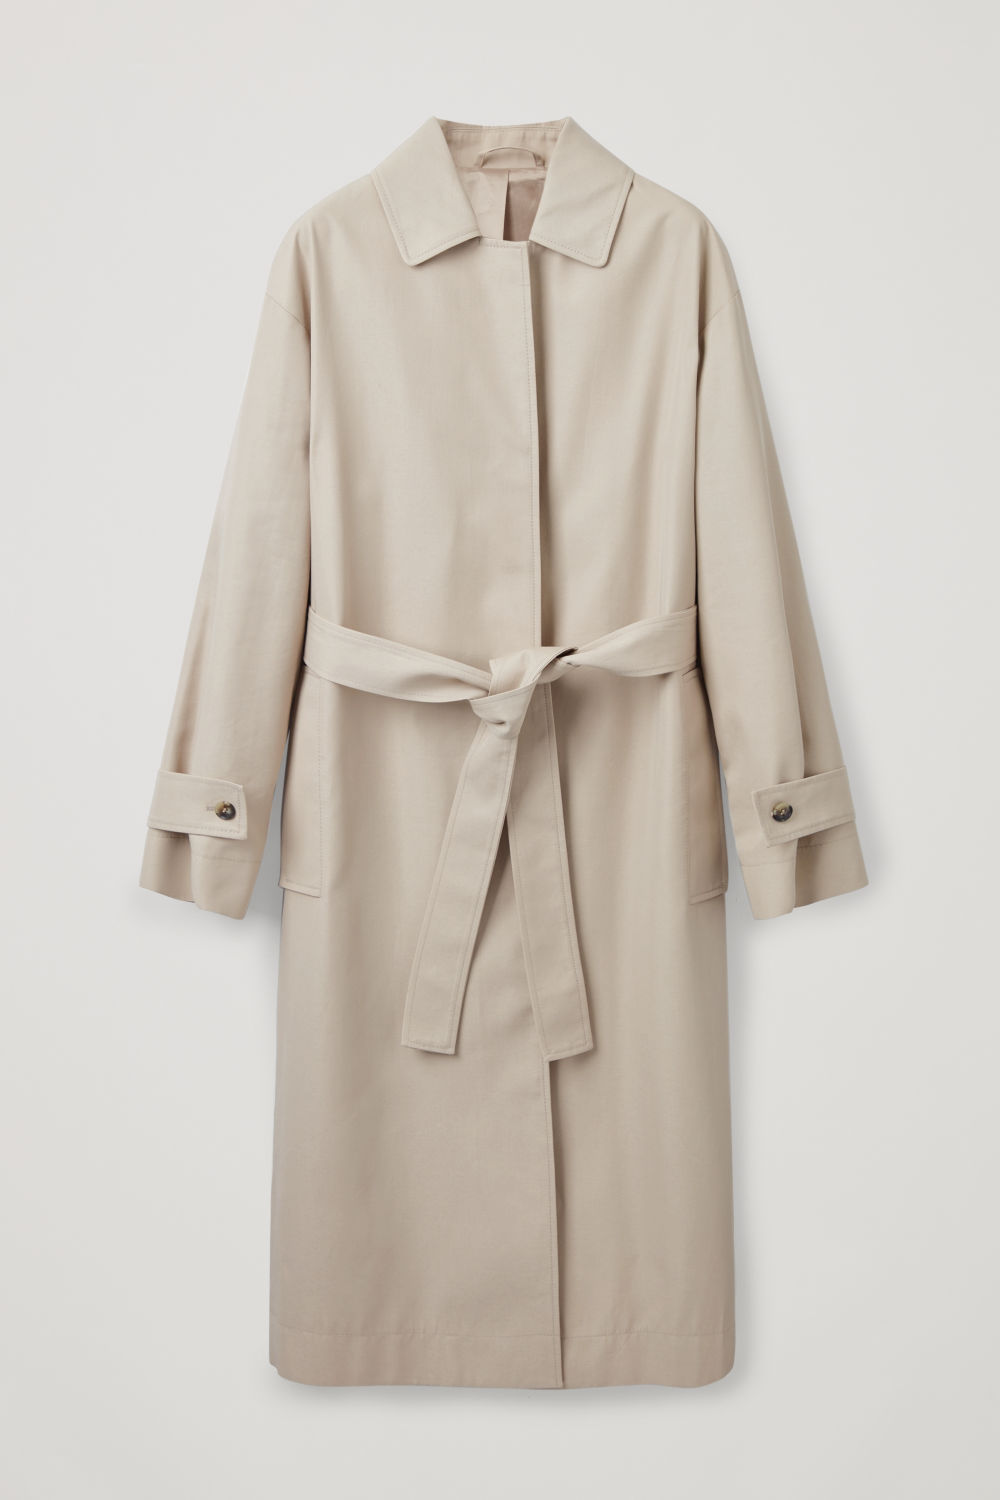 54a7dfd46b0 ORGANIC-COTTON TRENCH COAT ORGANIC-COTTON TRENCH COAT